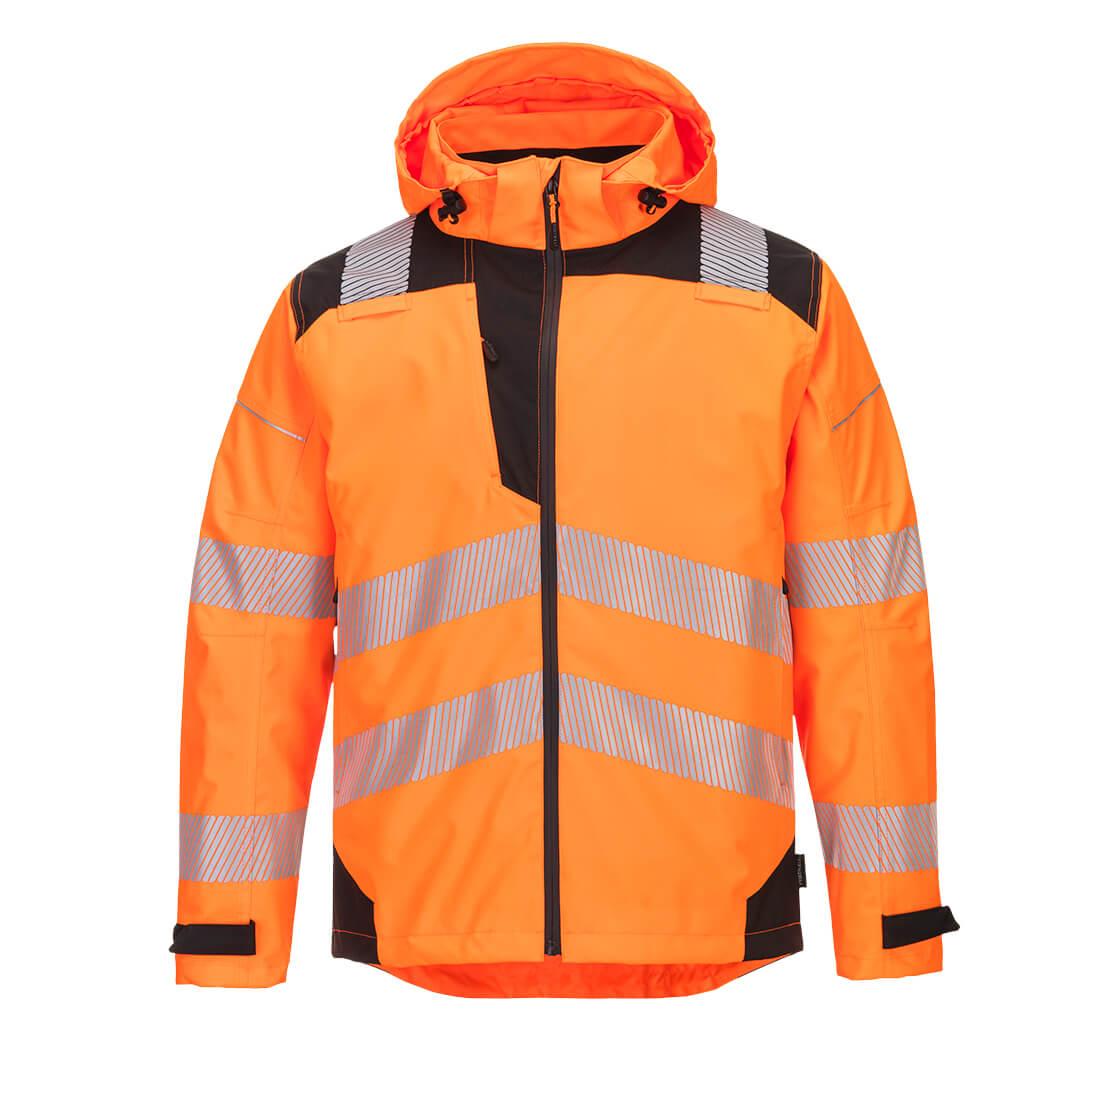 PW3 Extreme Breathable Rain Jacket Orange/Black XXL